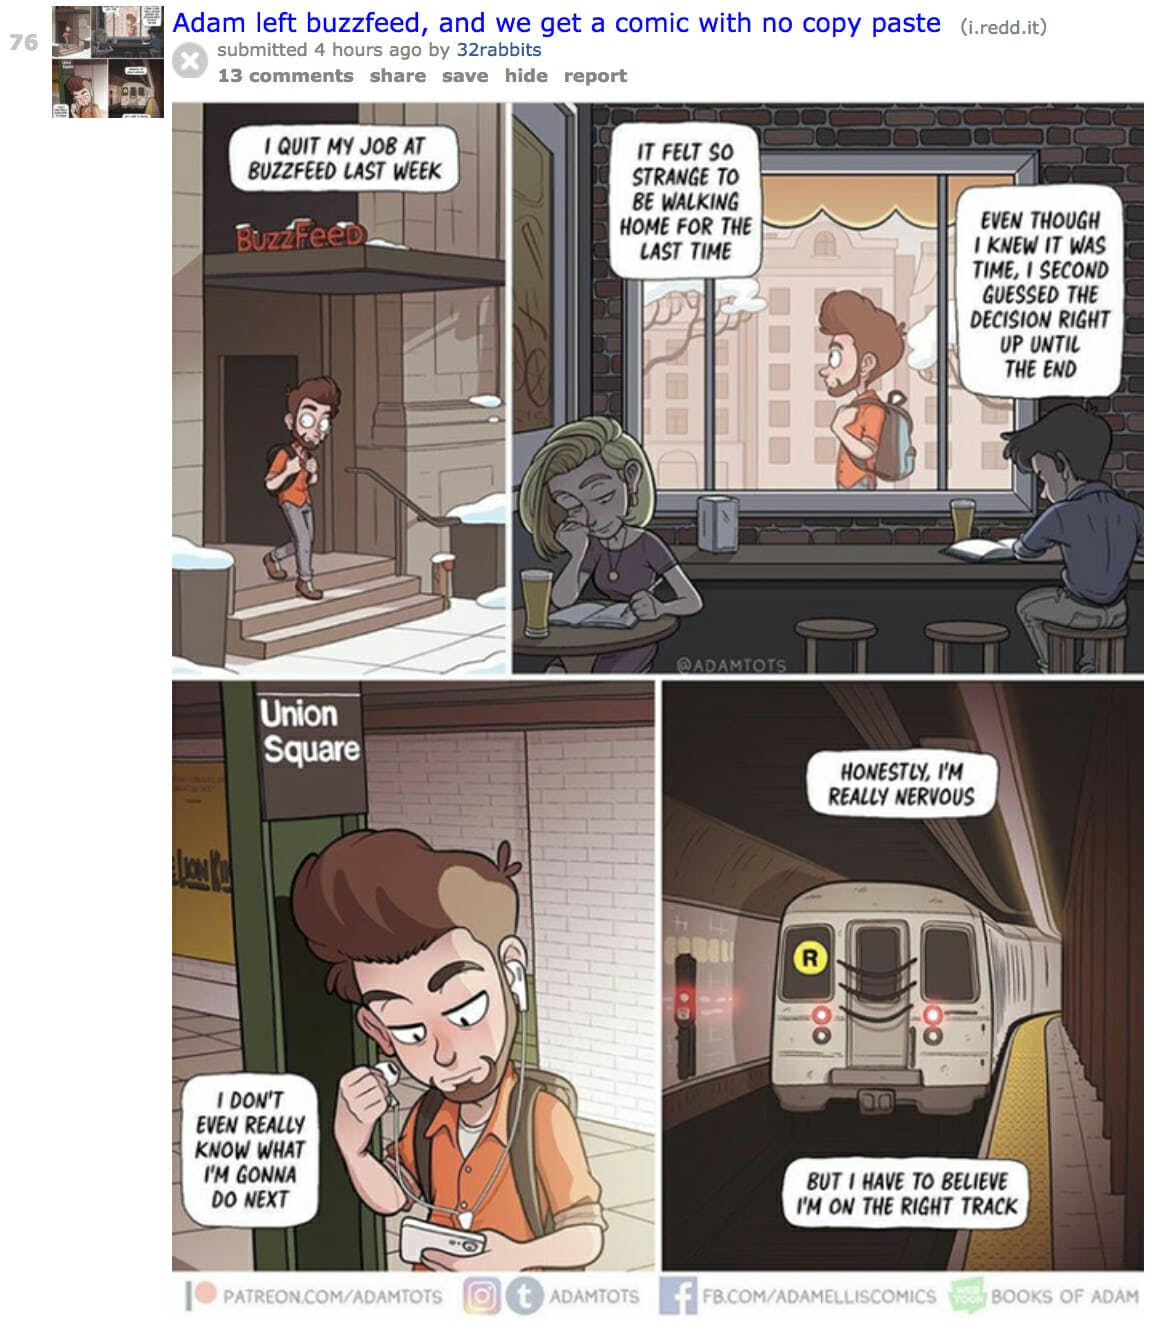 Adam Ellis, the illustrator behind the 'Dear David' ghost saga, created a comic about leaving his job at BuzzFeed.